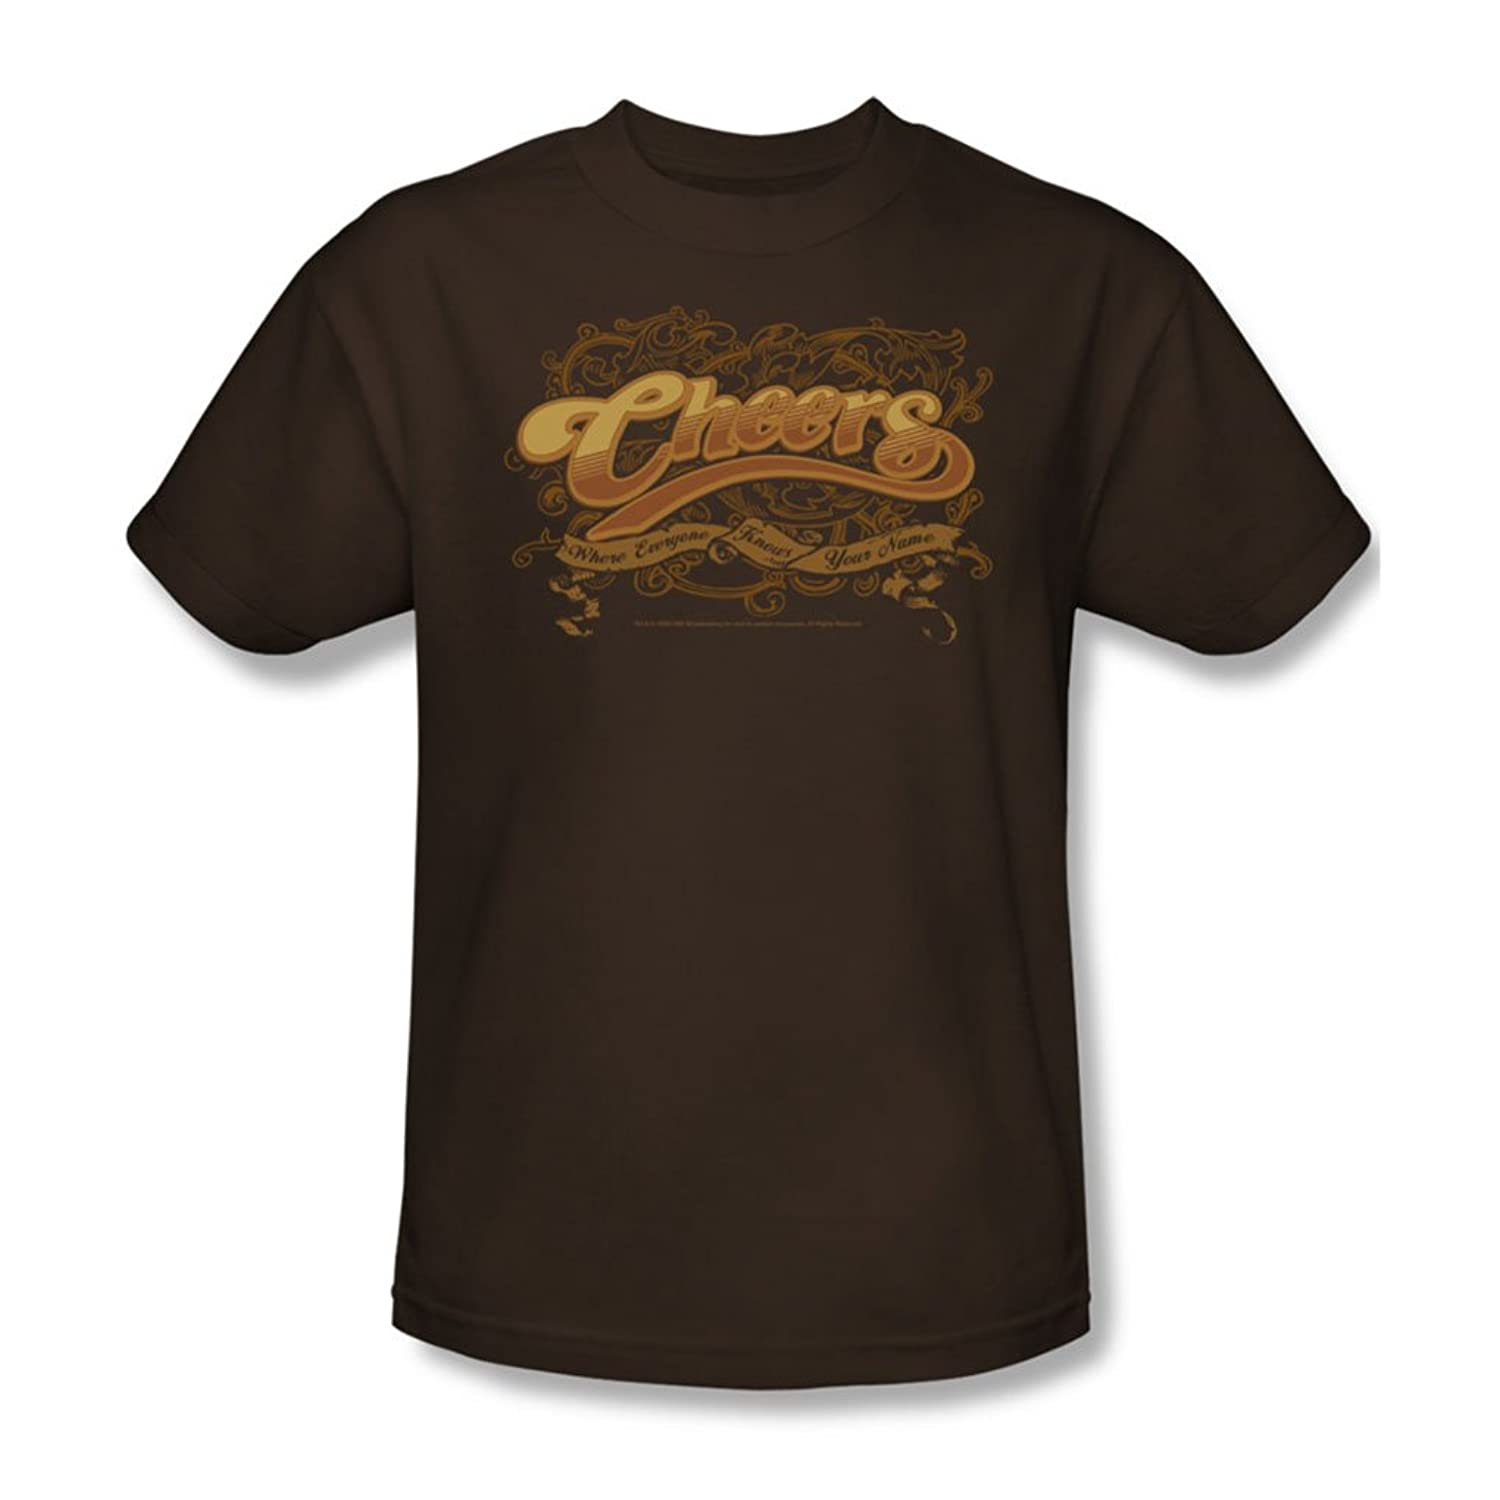 Cbs - Cheers / Scrolled Logo Adult T-Shirt In Coffee